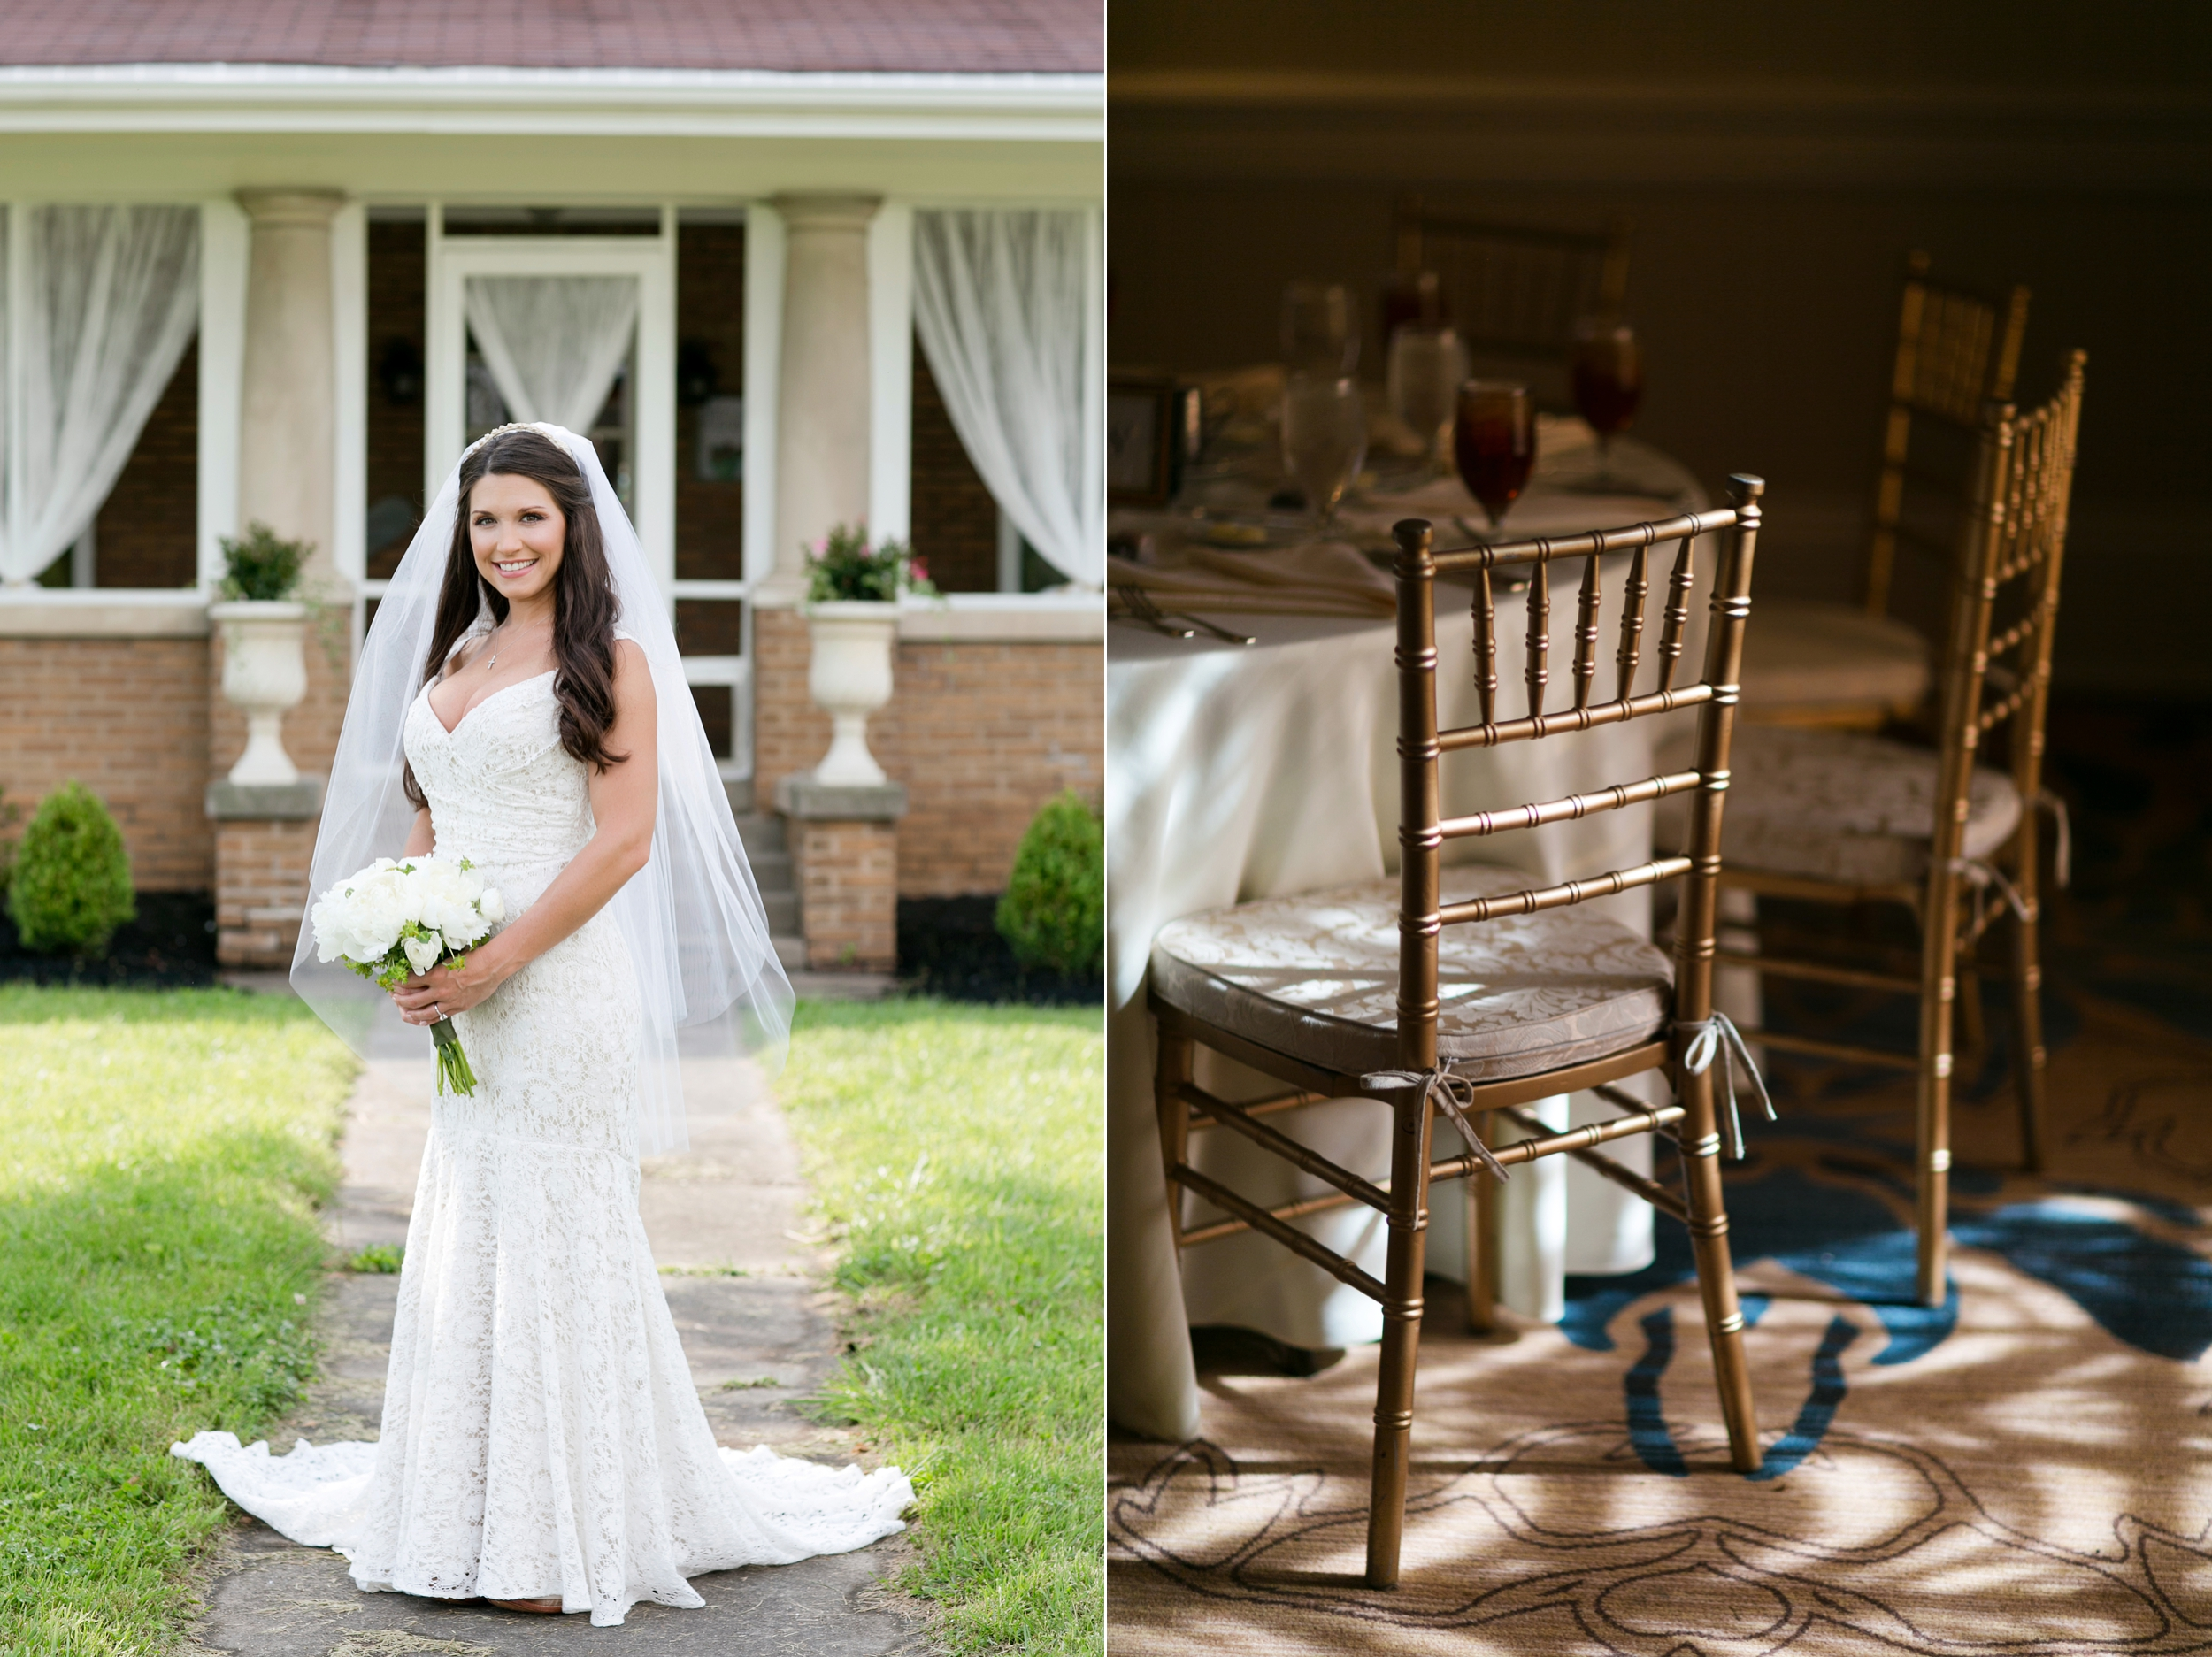 28-kentucky-farm-wedding-chivari-chairs.JPG